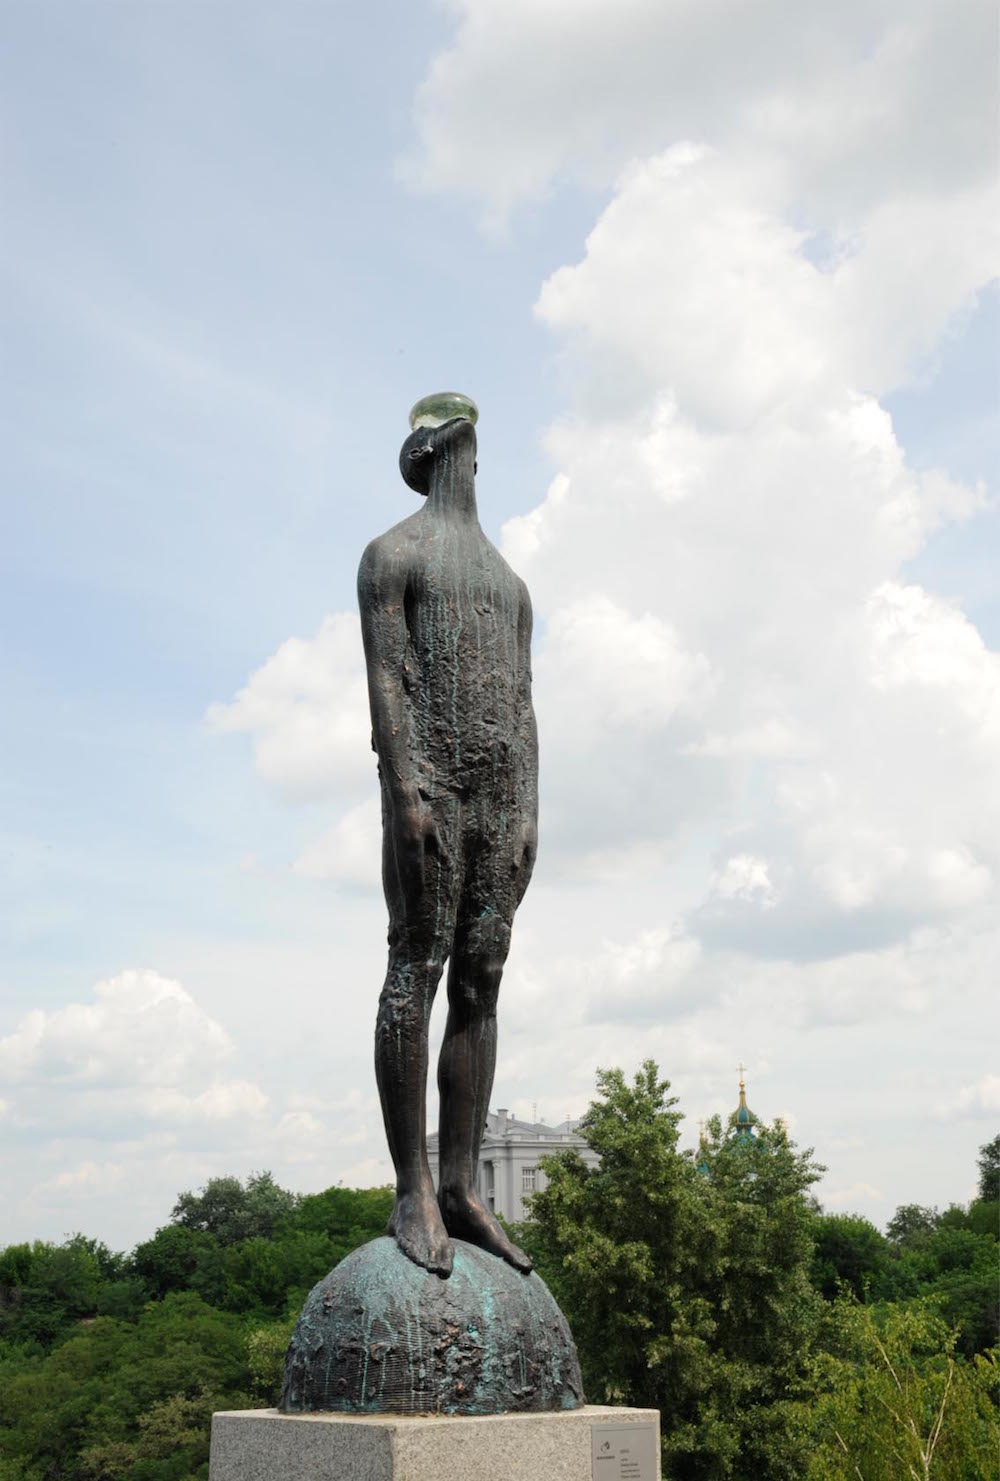 A Giant Glass Raindrop Balances on a Bronze Man's Face in Ukraine